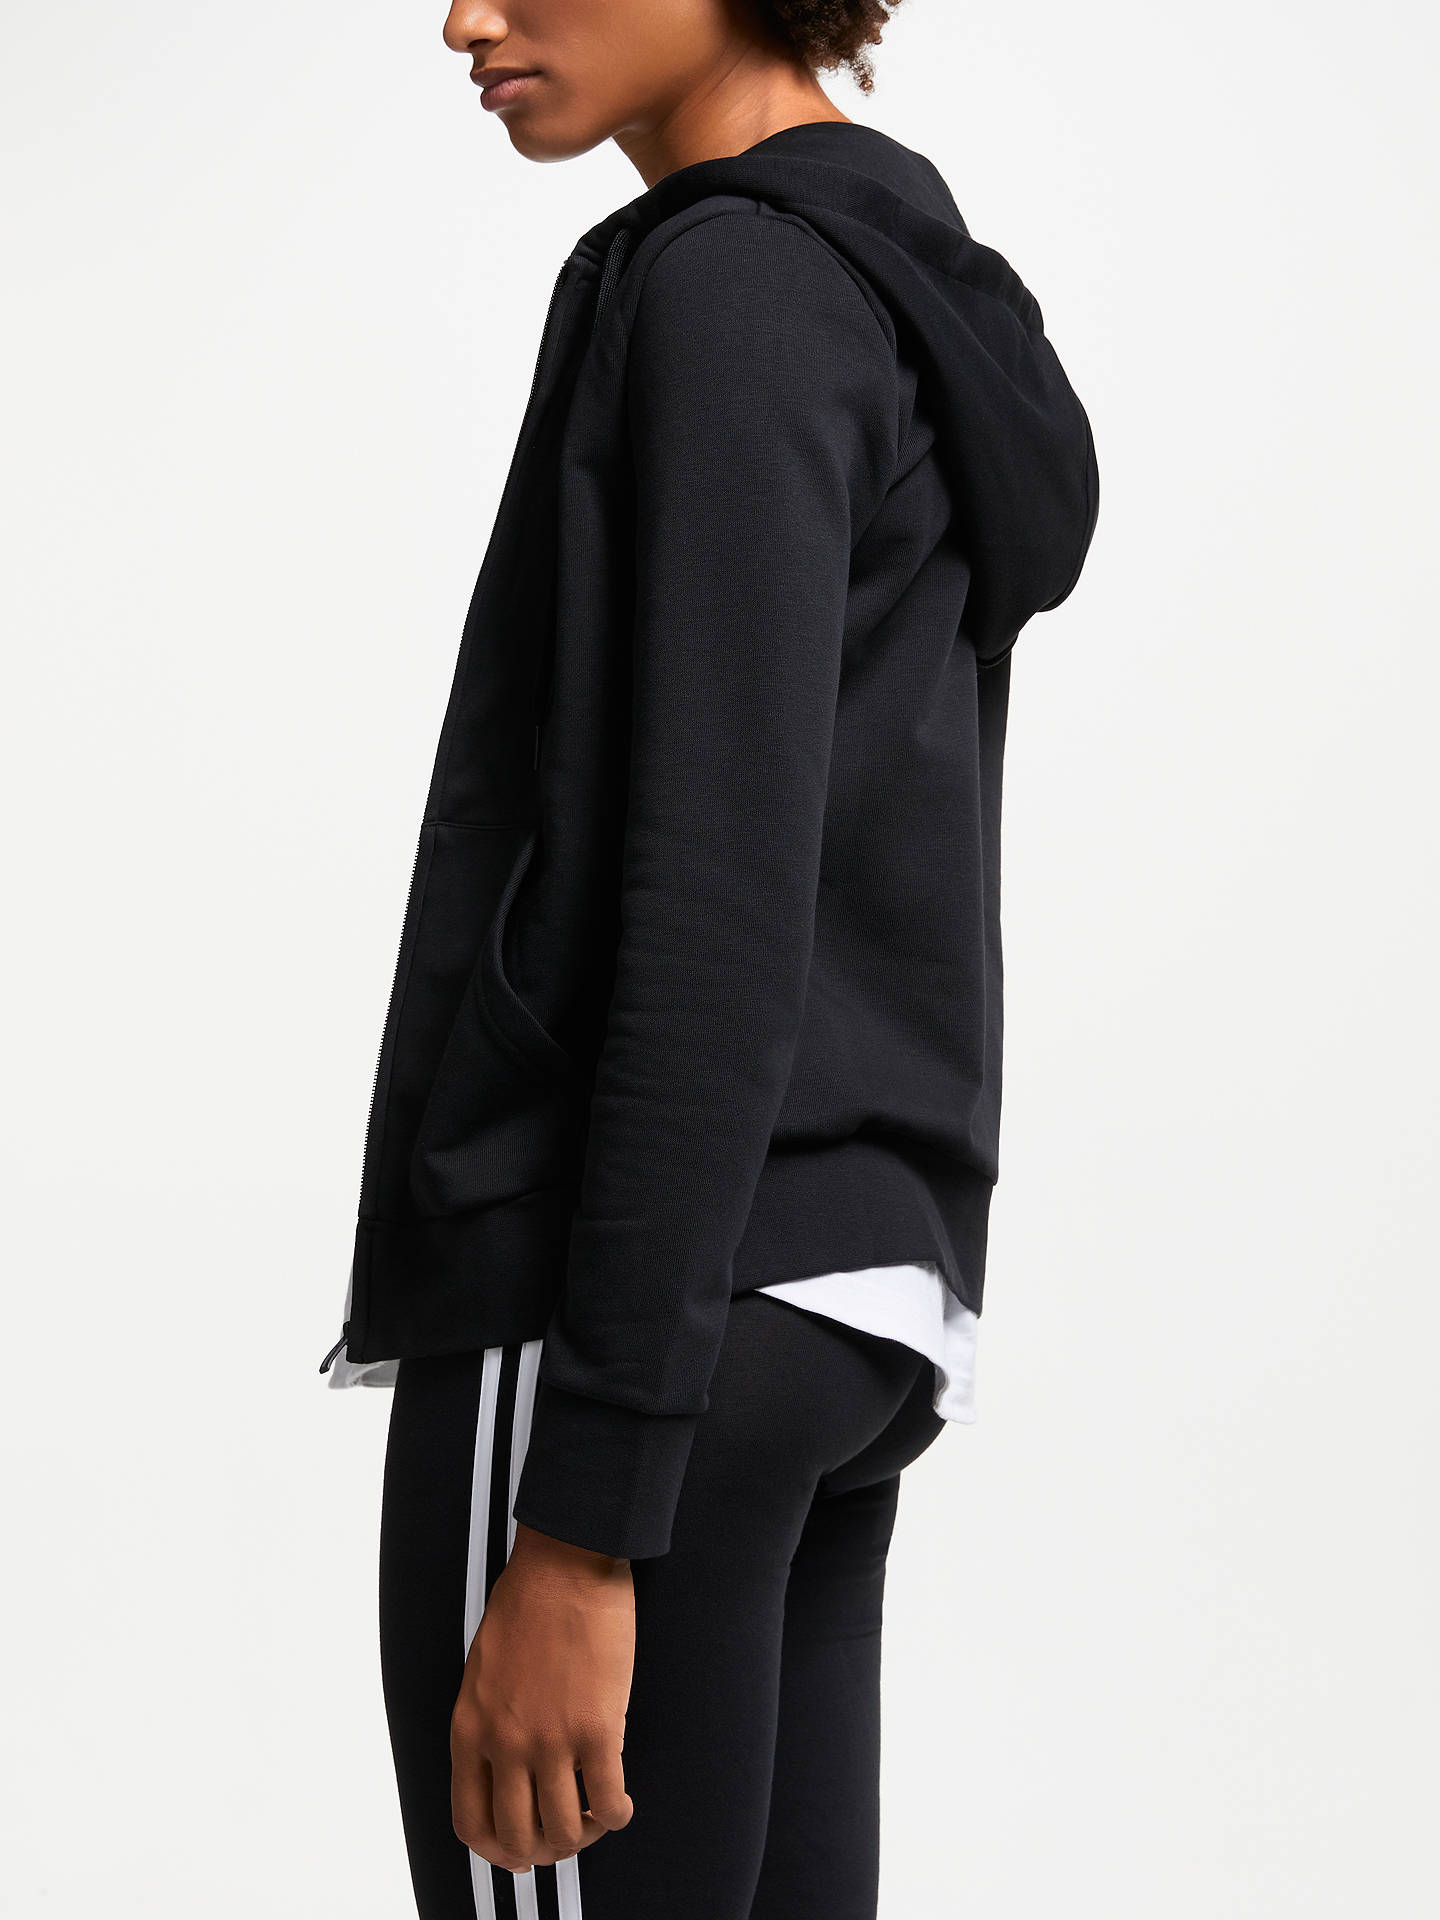 Buy adidas Essentials Solid Full Zip Training Hoodie, Black, M Online at johnlewis.com